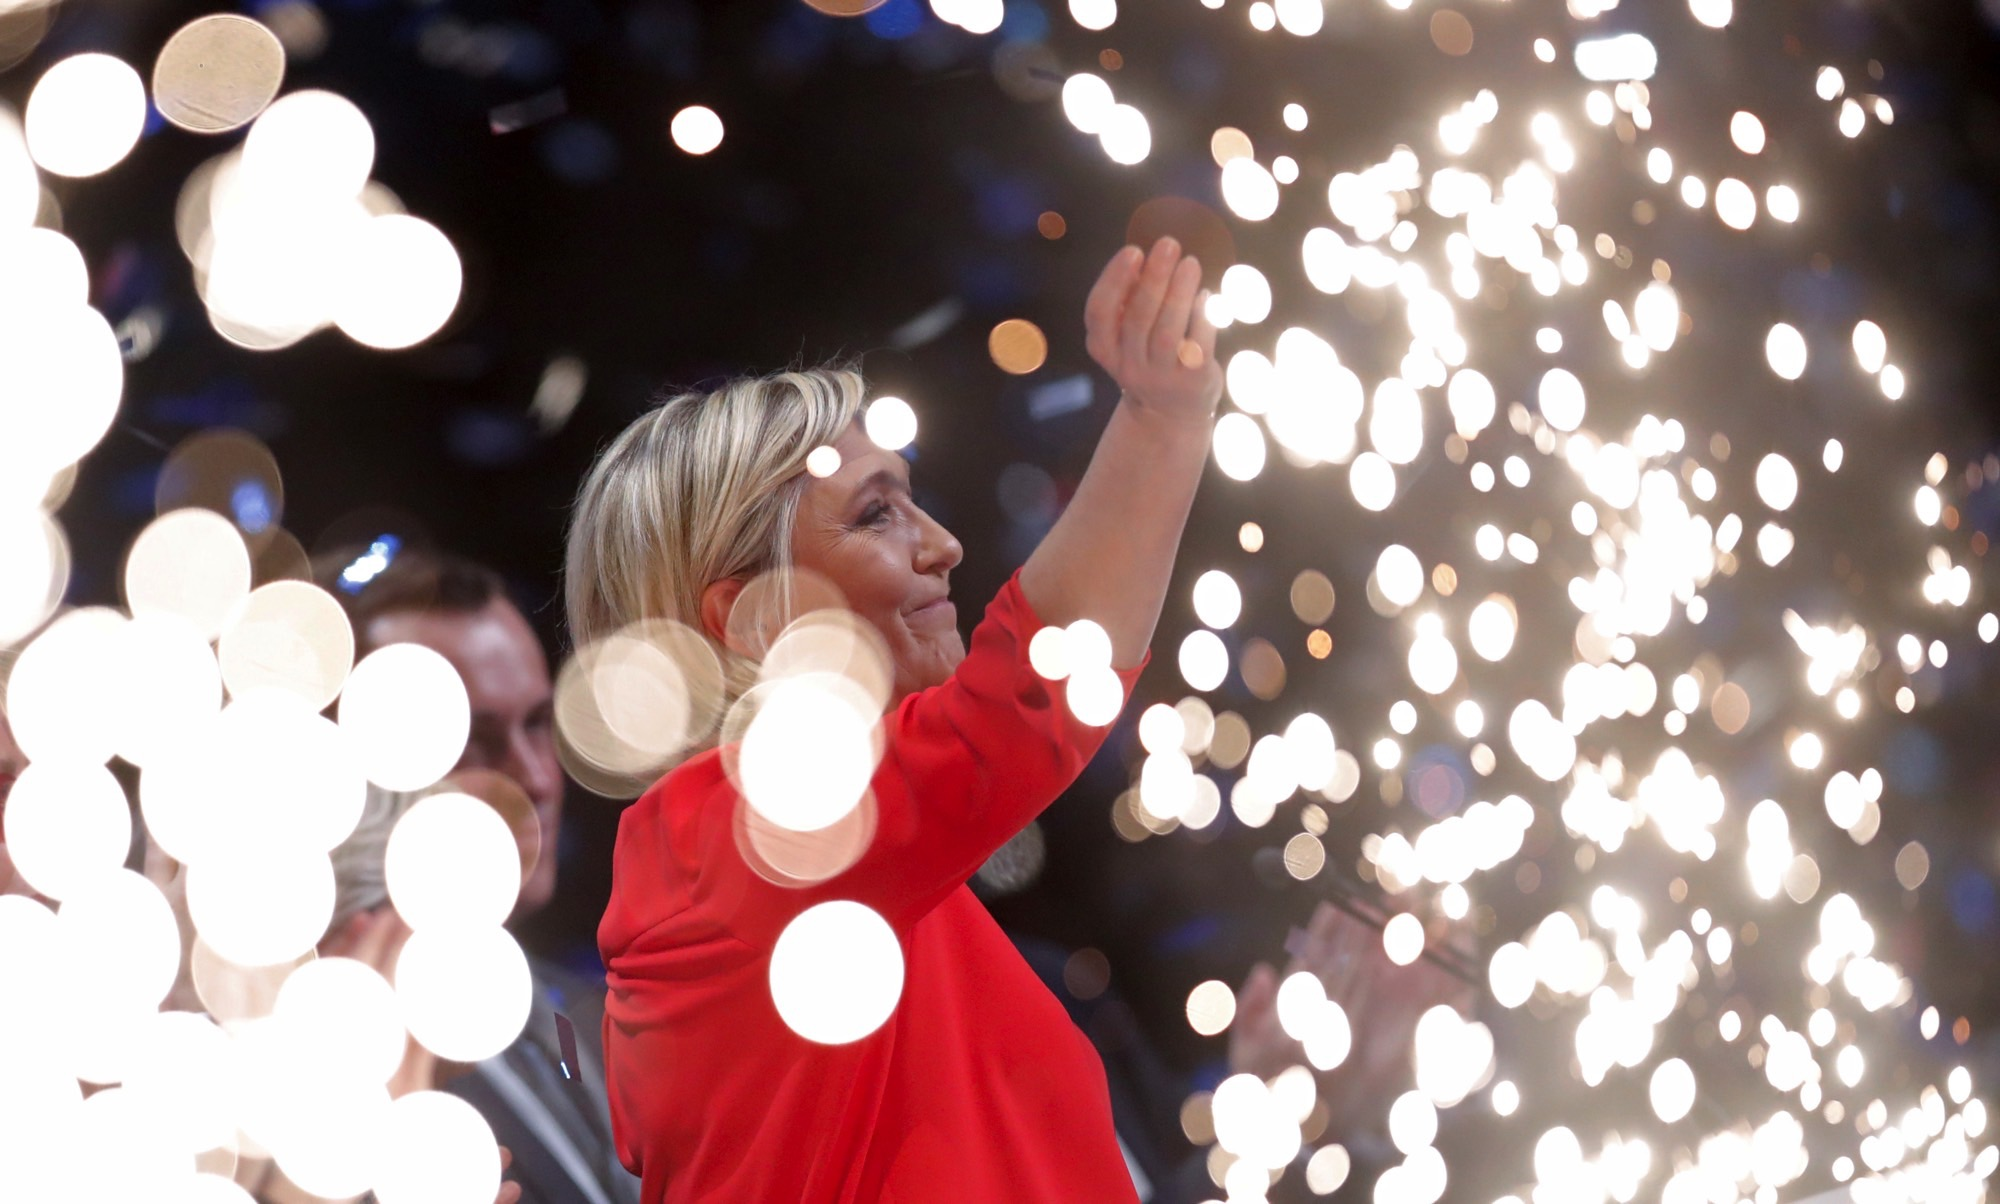 France: Le Pen Says Most Suited to Face 'New World' of Trump, Putin